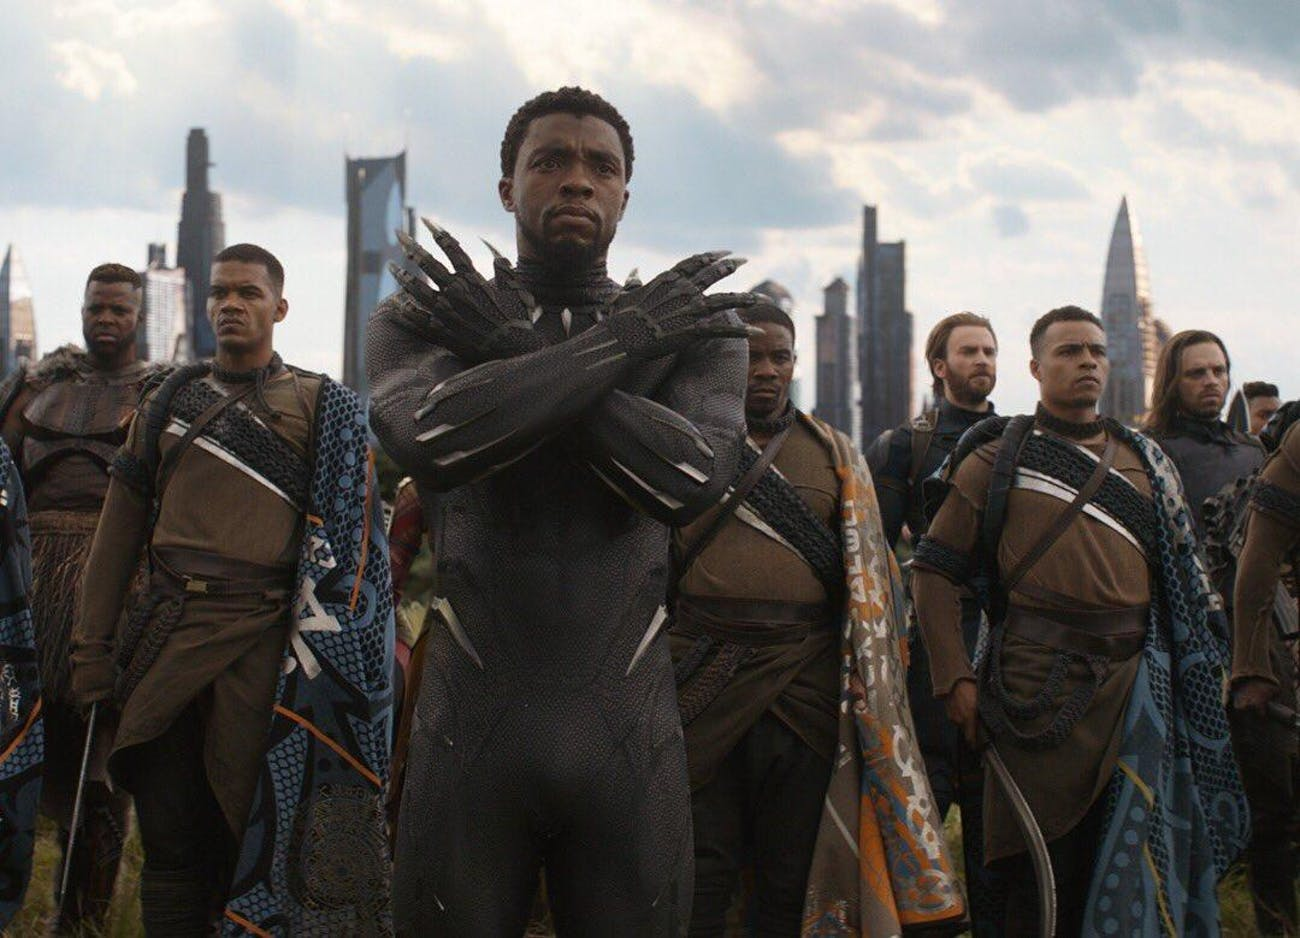 T'Challa leads the defense of Wakanda's capital city against Thanos's armies, with tons of heroes at his back.